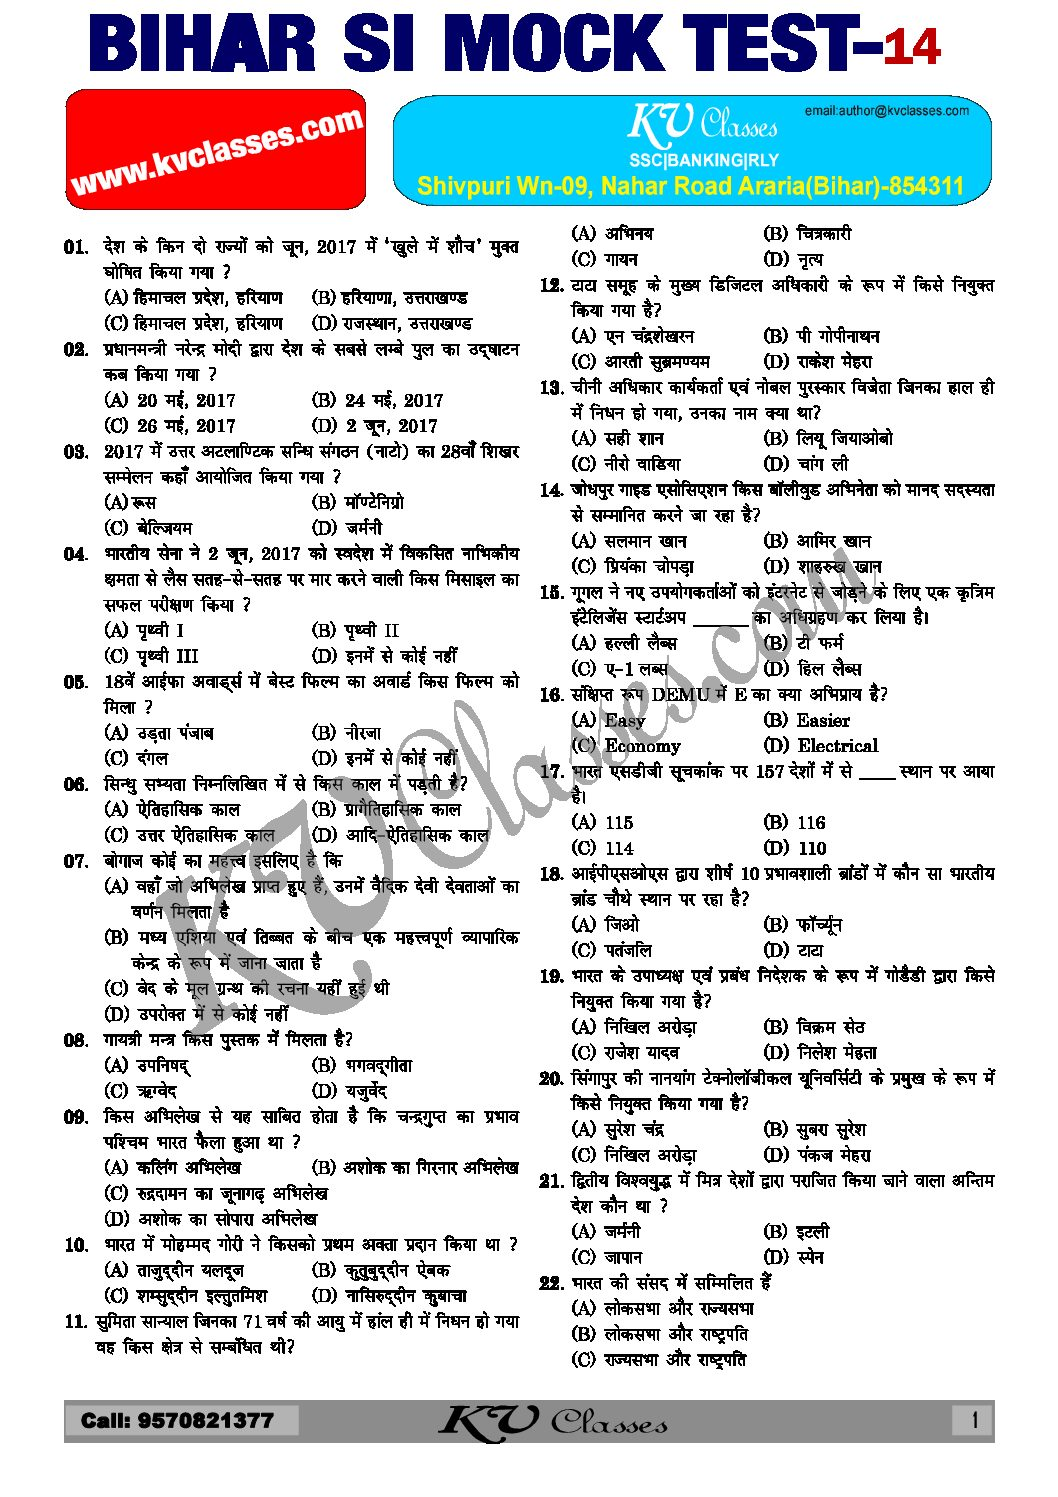 BIHAR SI (बिहार दरोगा ) Exam 2017 Mock Test Paper-14 in Hindi PDF Download